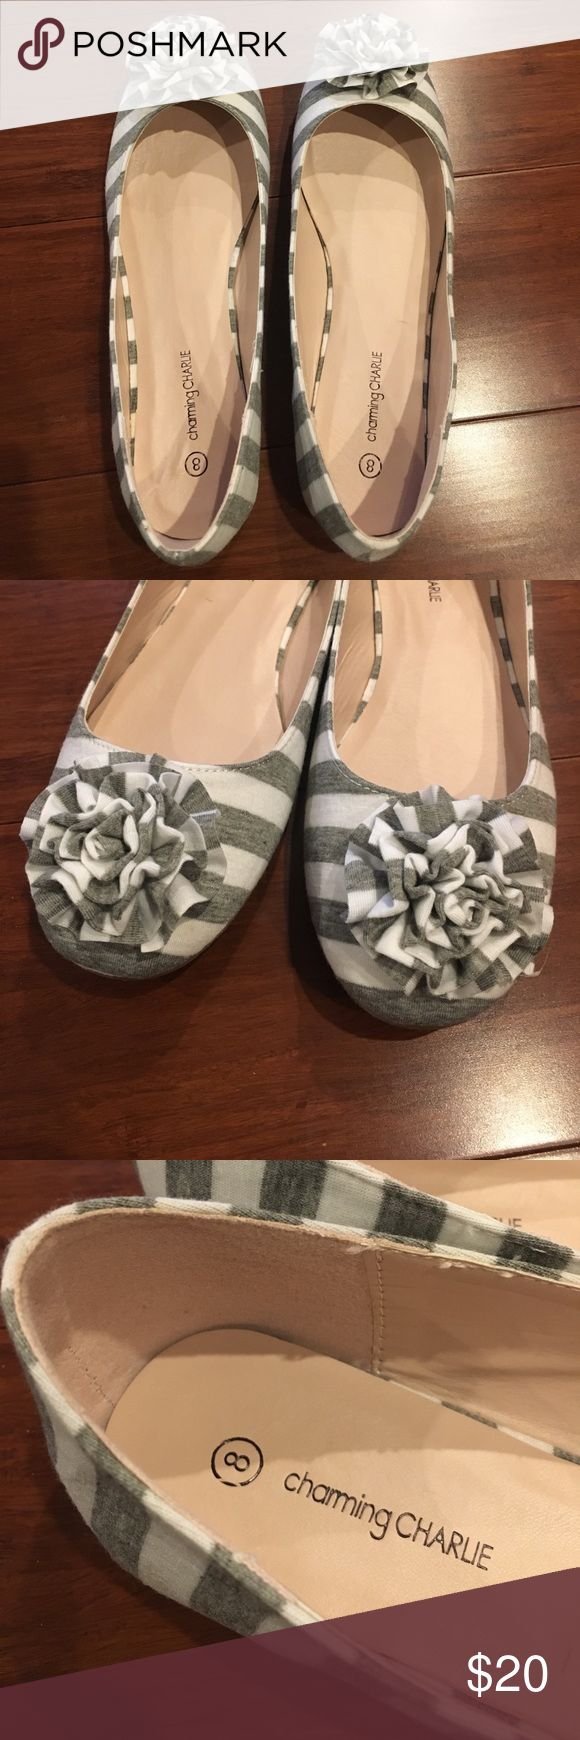 Grey and White Striped Ballet Flats Adorable grey and white striped ballet flats with floral embellishments on the toes from Charming Charlie! Never worn and in excellent condition. Women's size 8. Charming Charlie Shoes Flats & Loafers